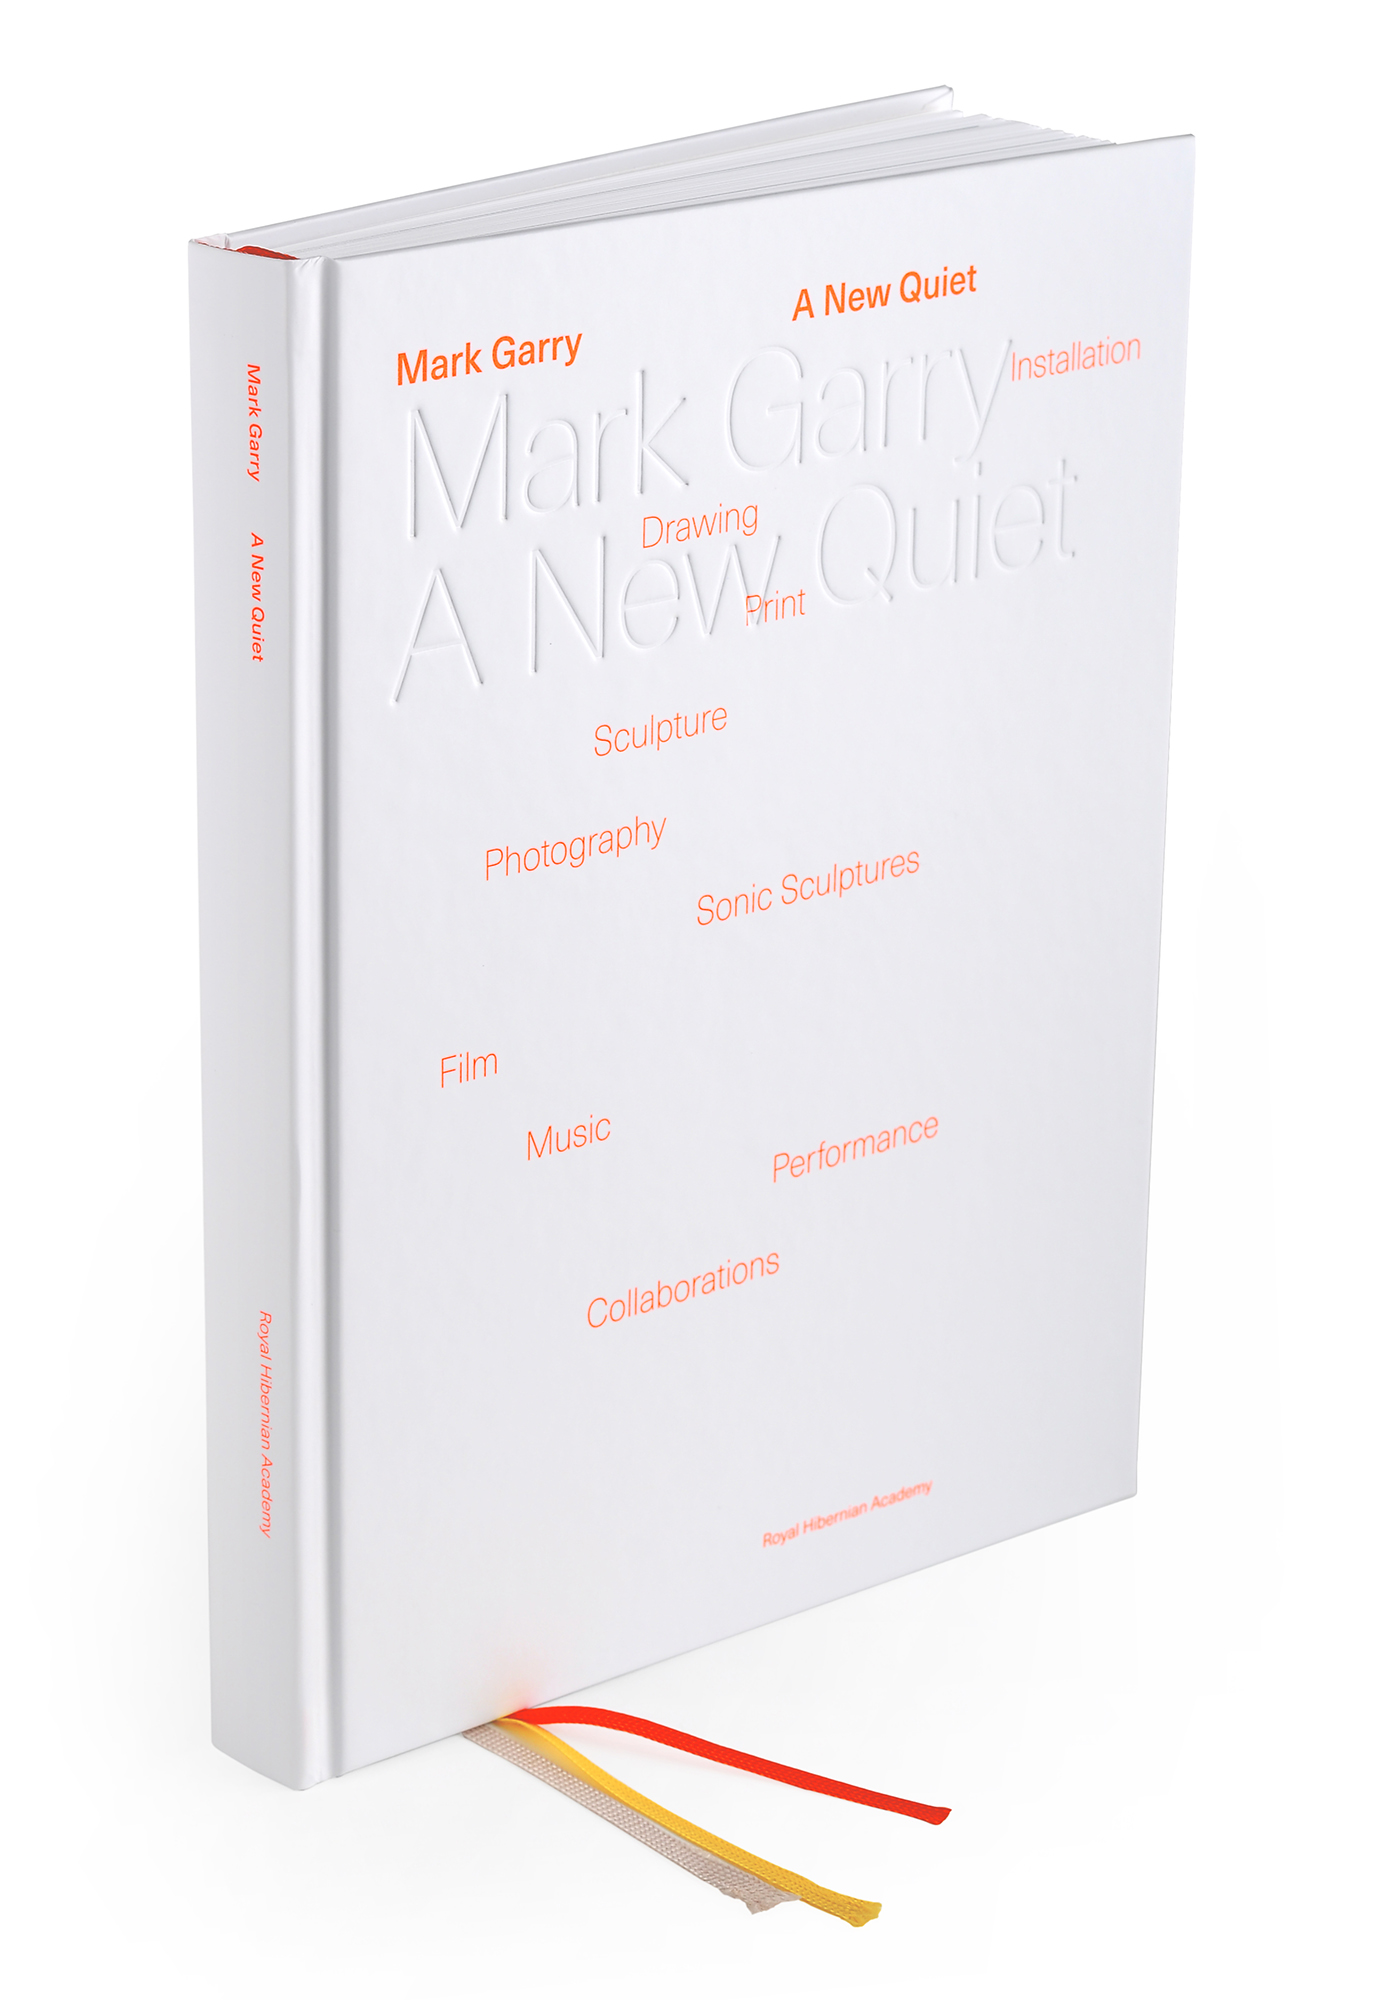 Cover image: Mark Garry — A New Quiet